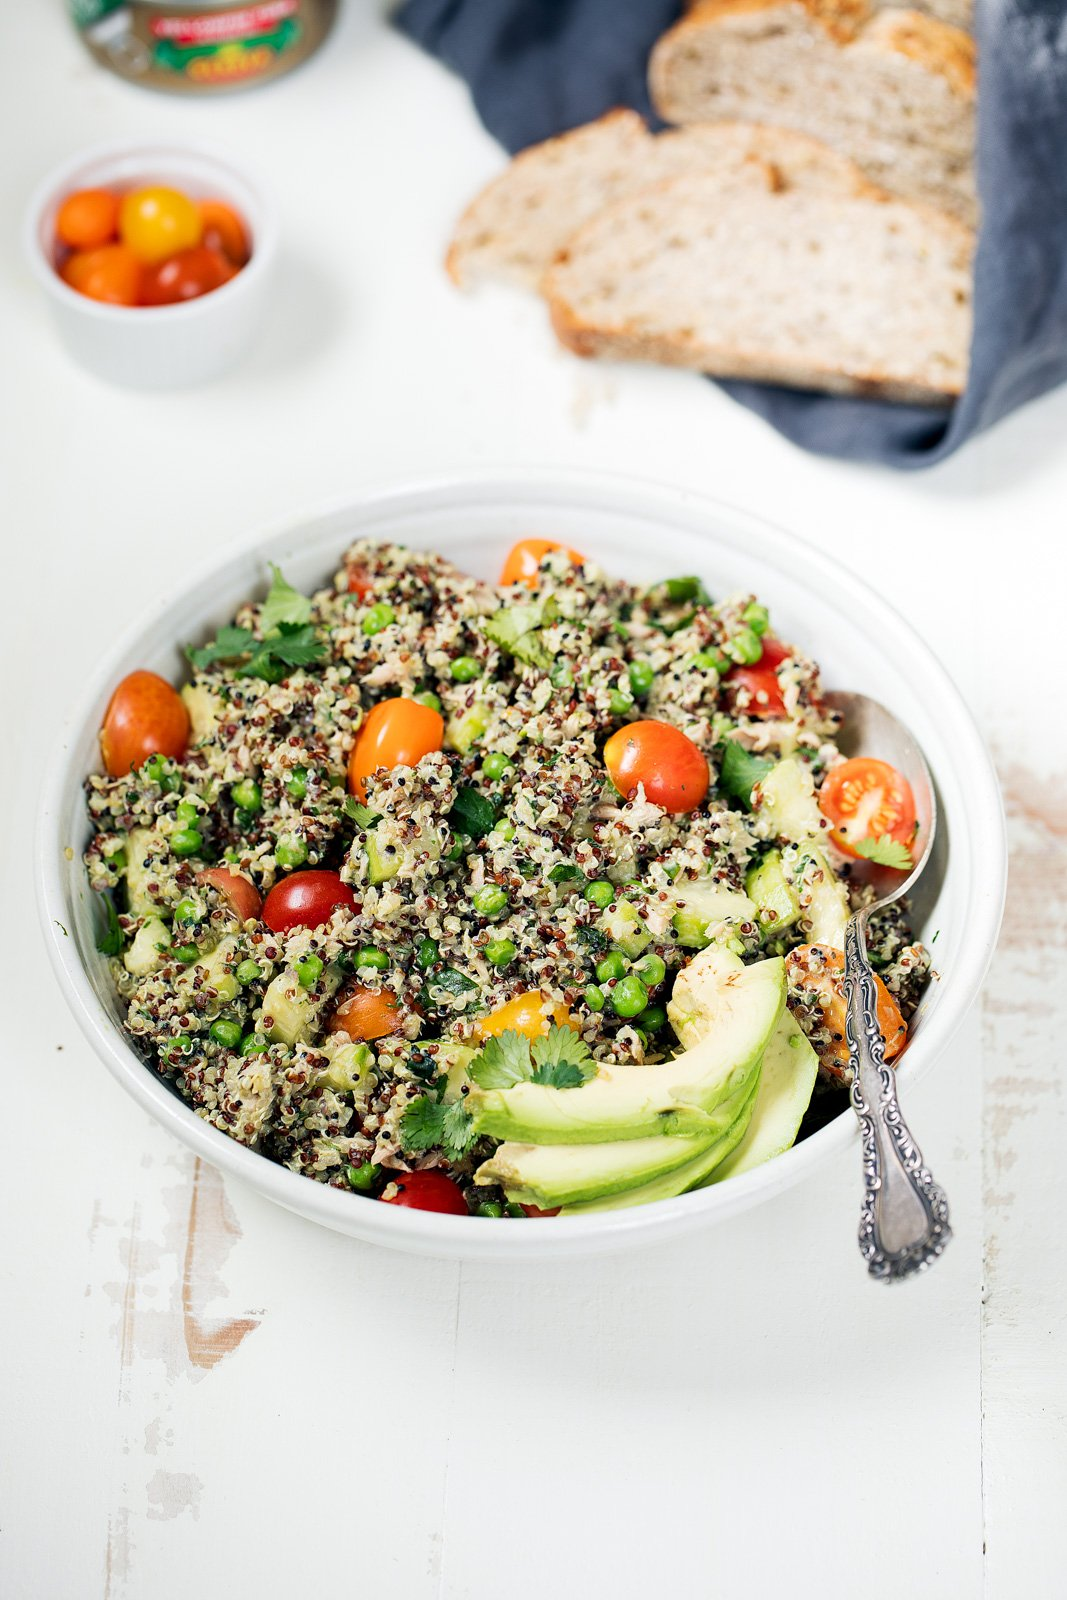 Delicious, easy quinoa salad recipes that are perfect for weekday lunches! These flavorful, protein-packed salads will be your new go-to quinoa recipes.